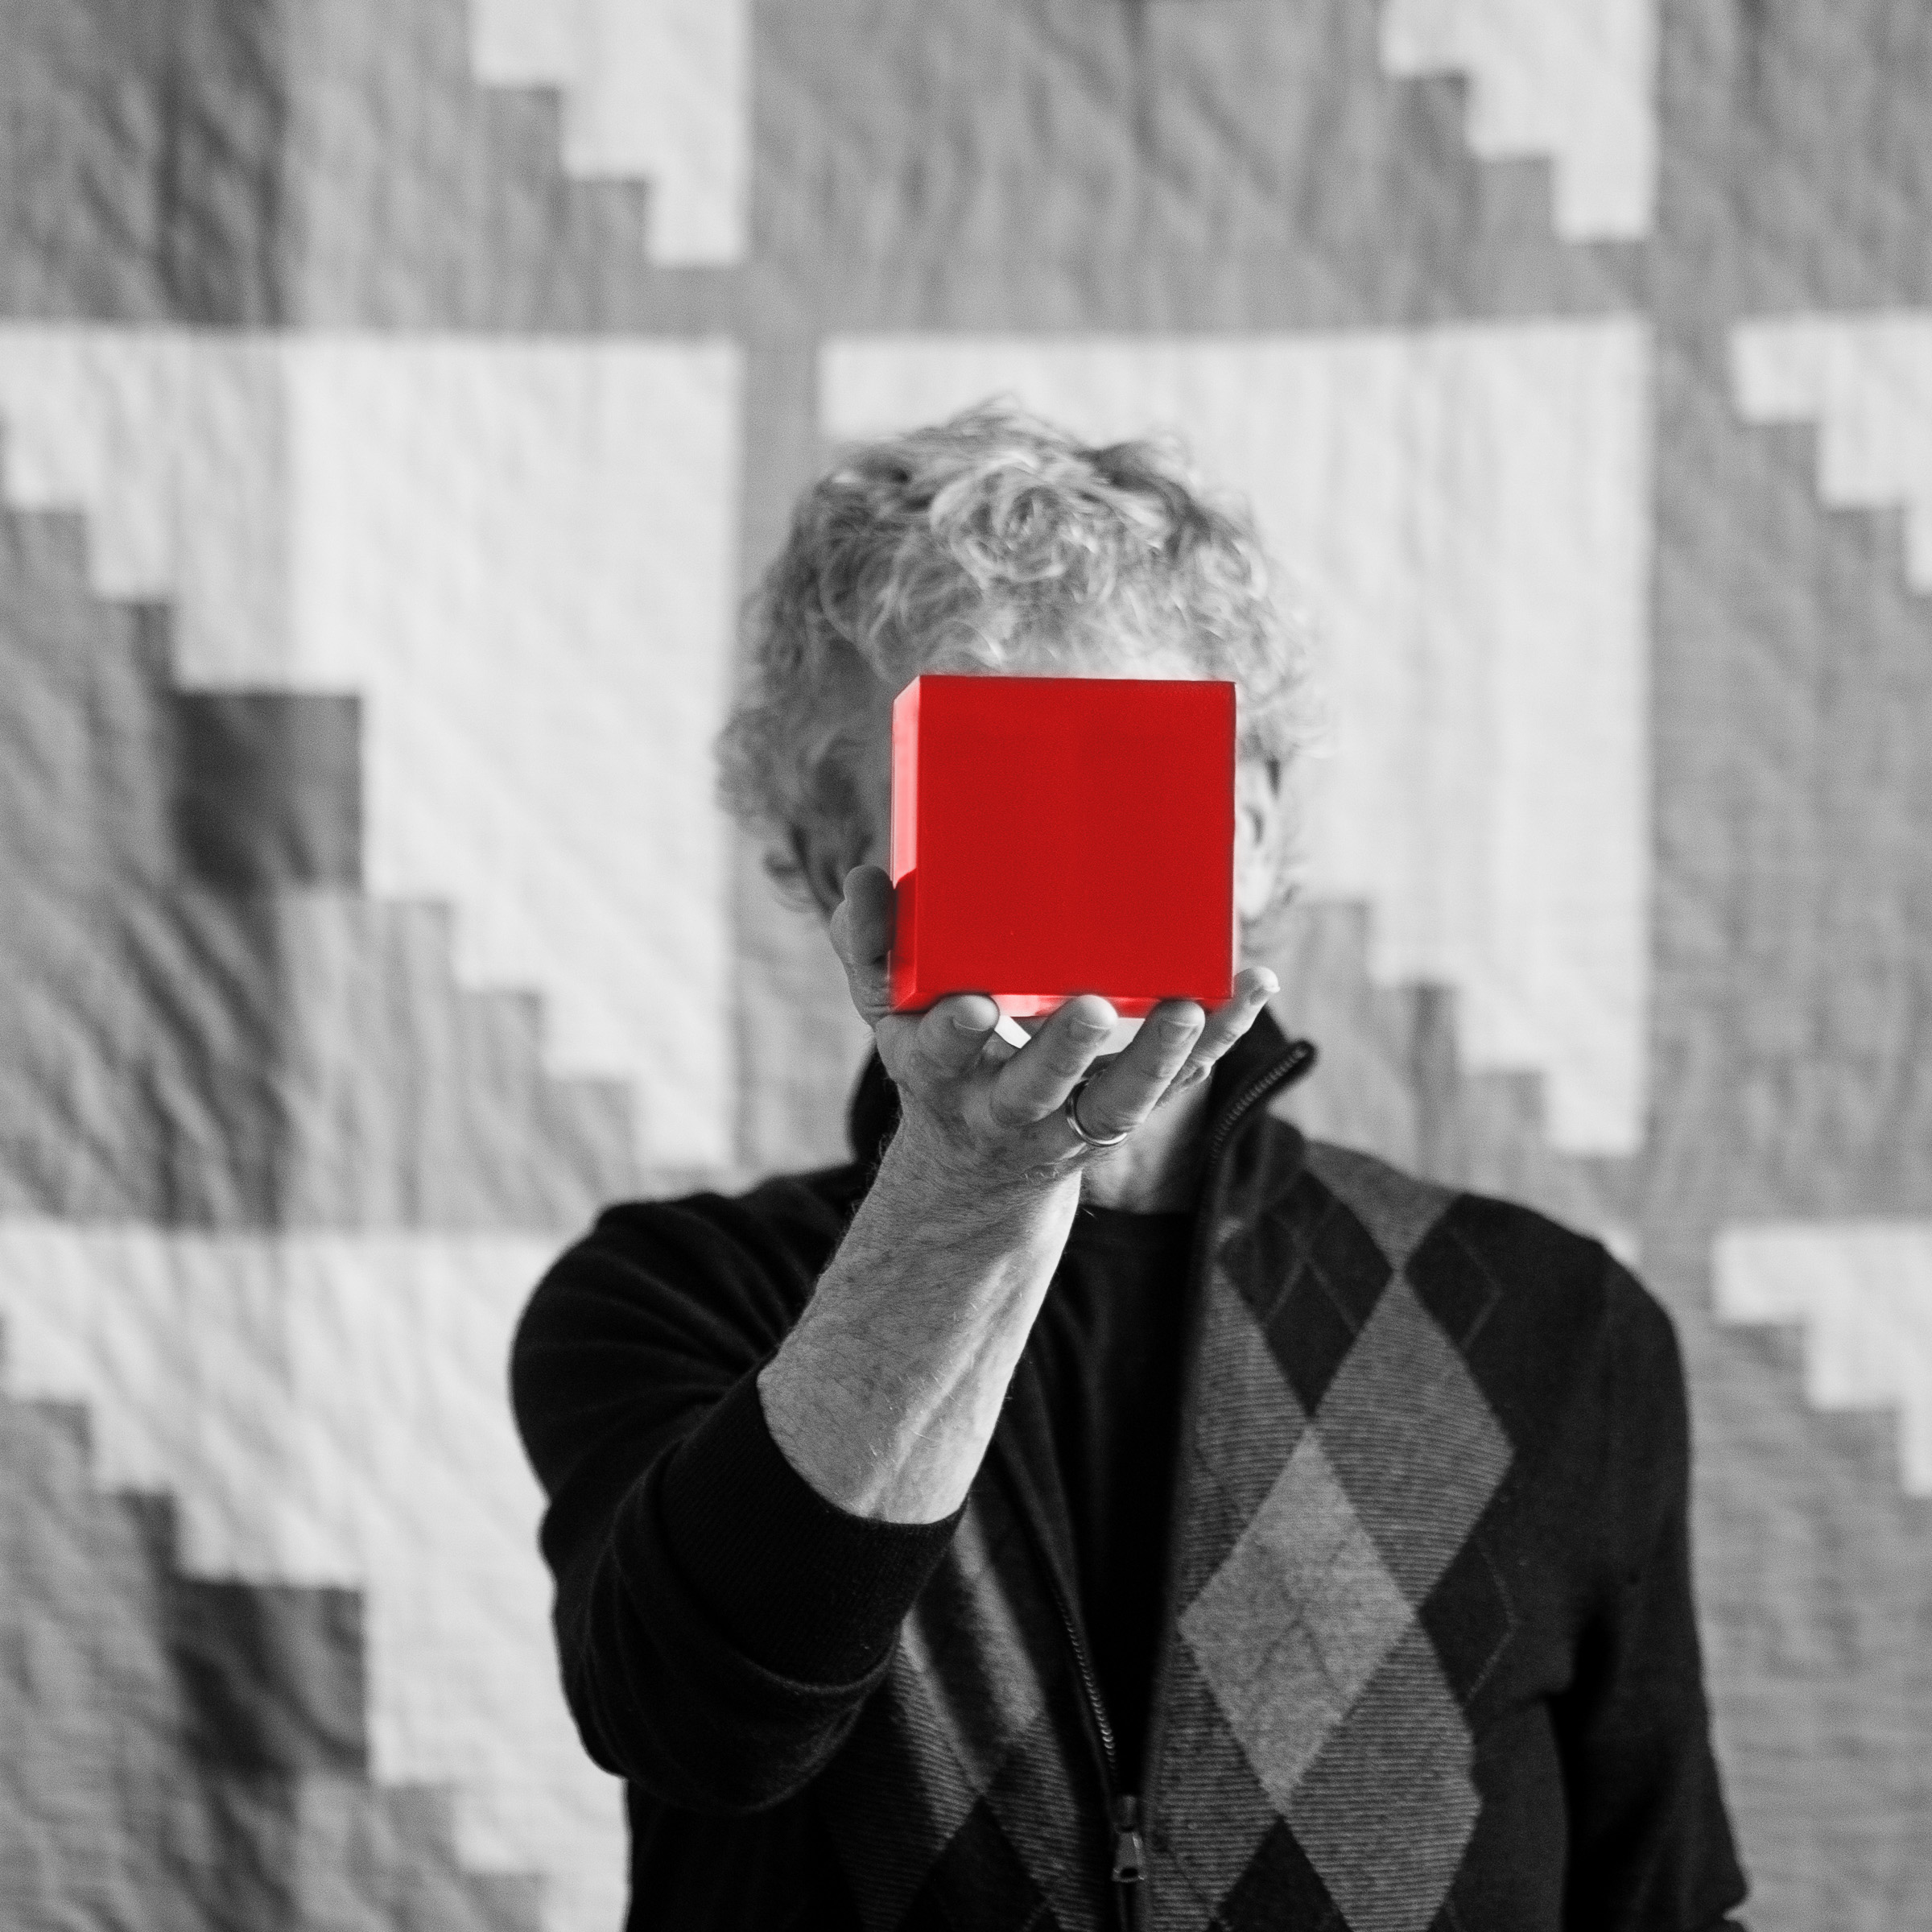 Roger Sametz in black and white, holding a red cube in front of his face